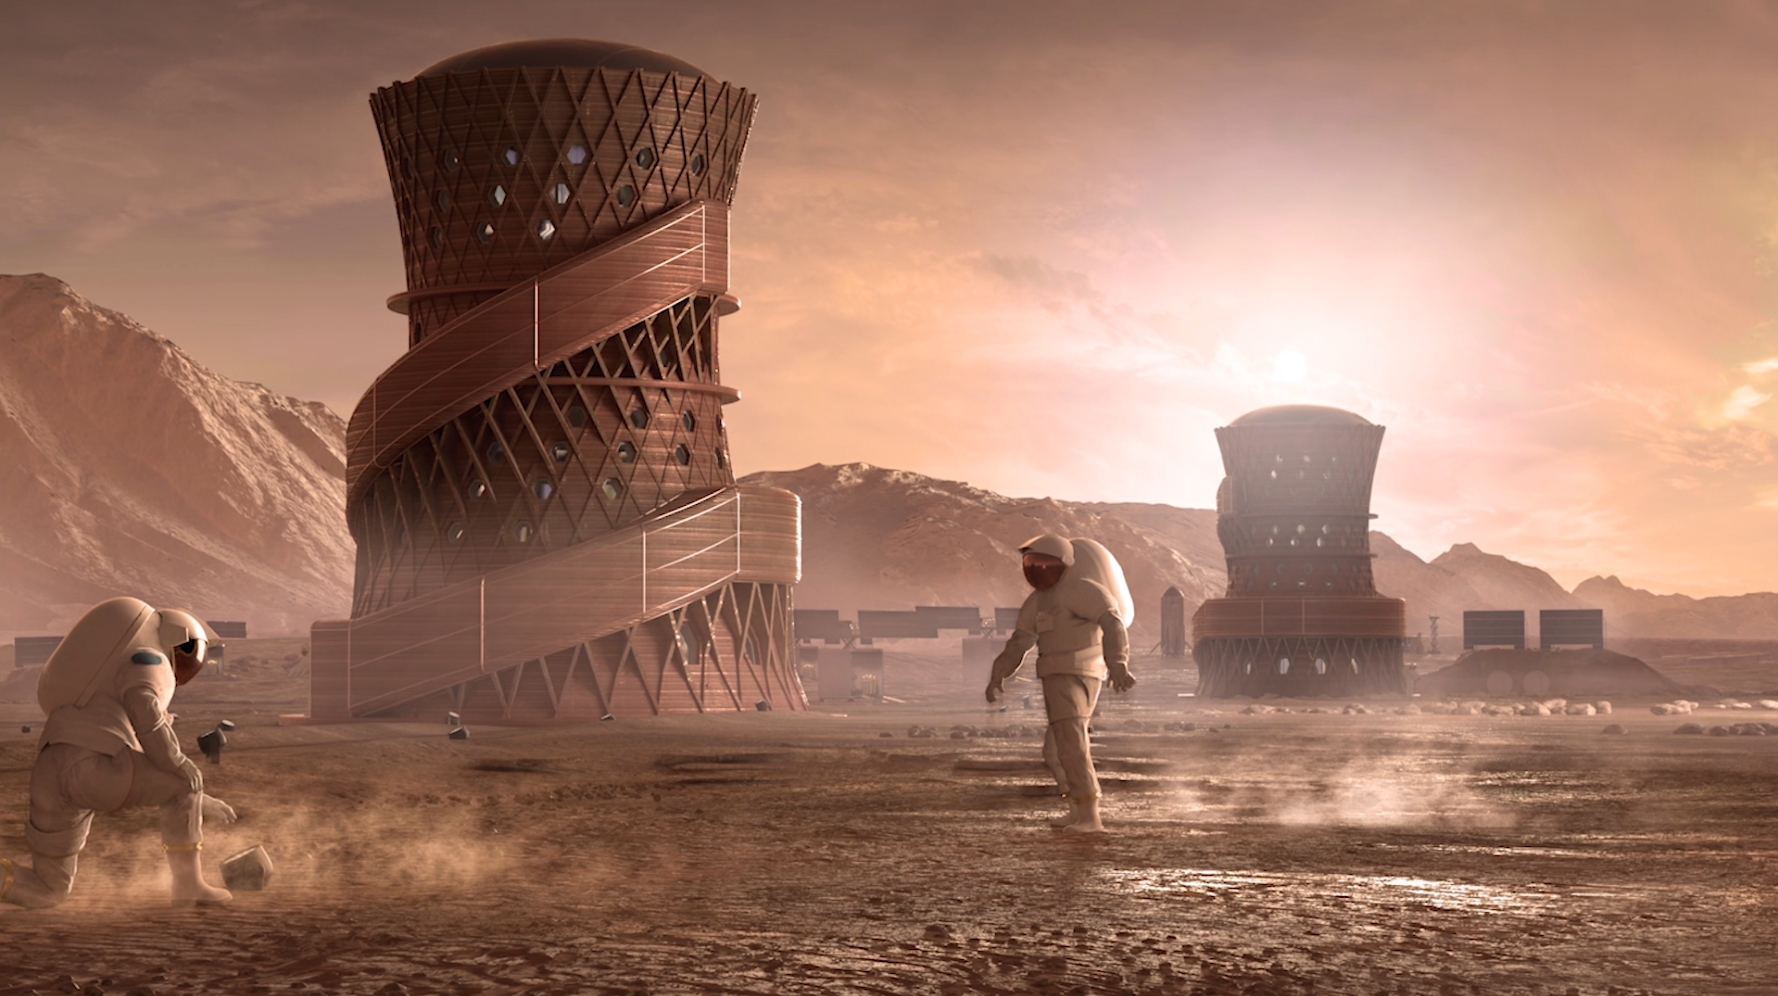 U.S. Congress Is Getting Serious About Sending Humans To Mars In 2033